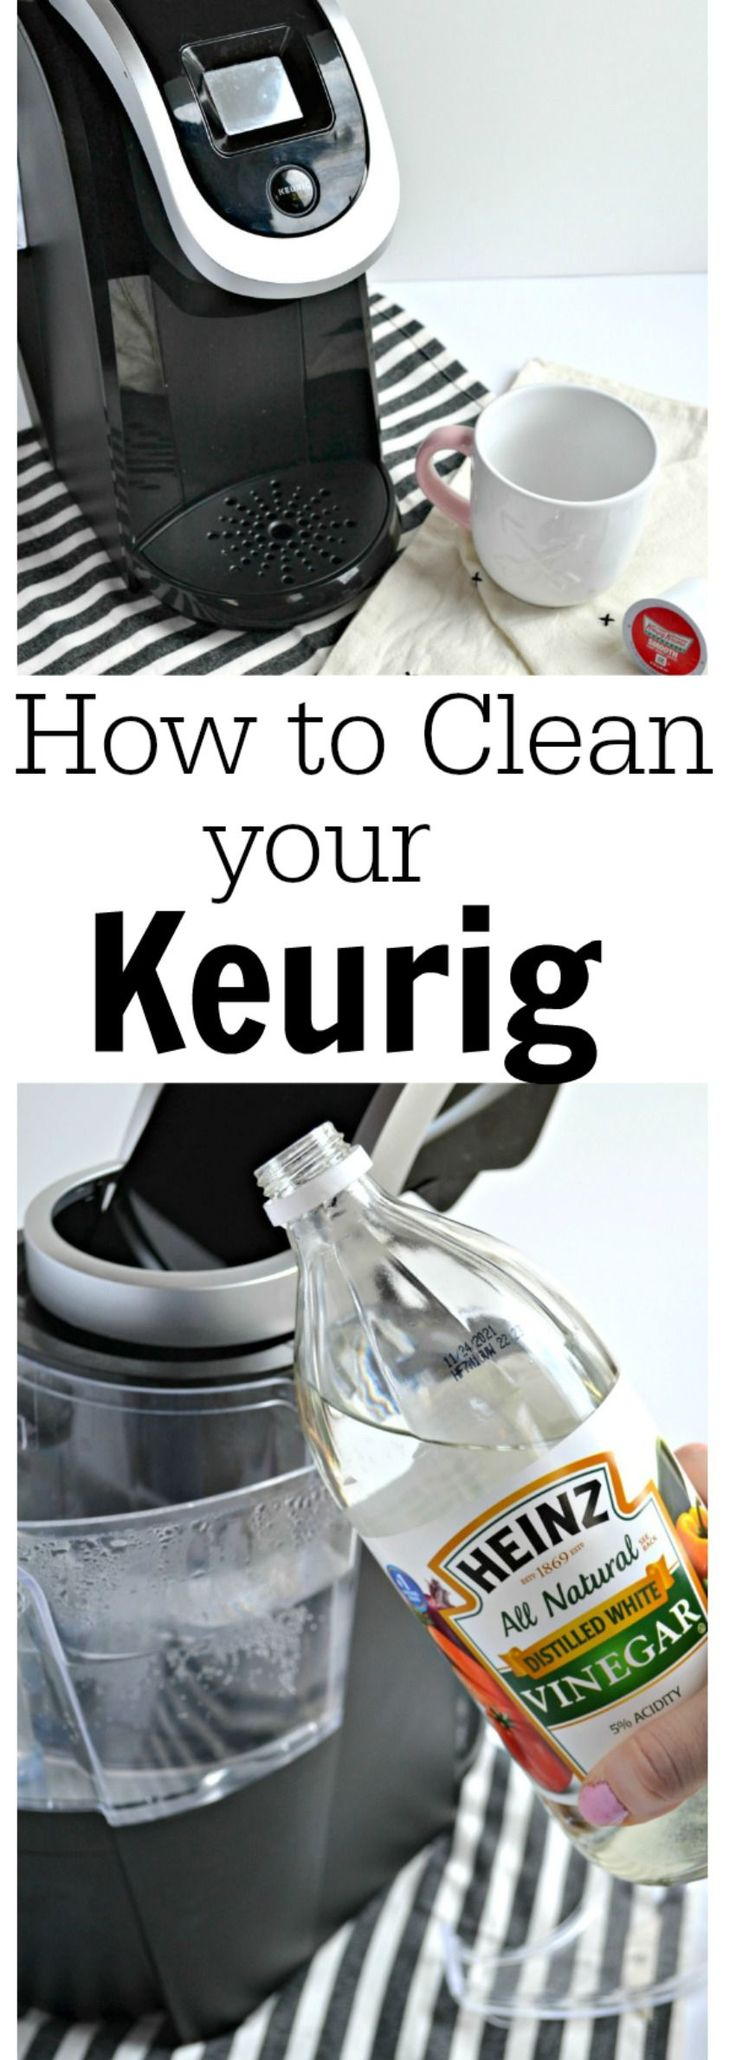 How to clean a keurig coffee maker the best way to clean